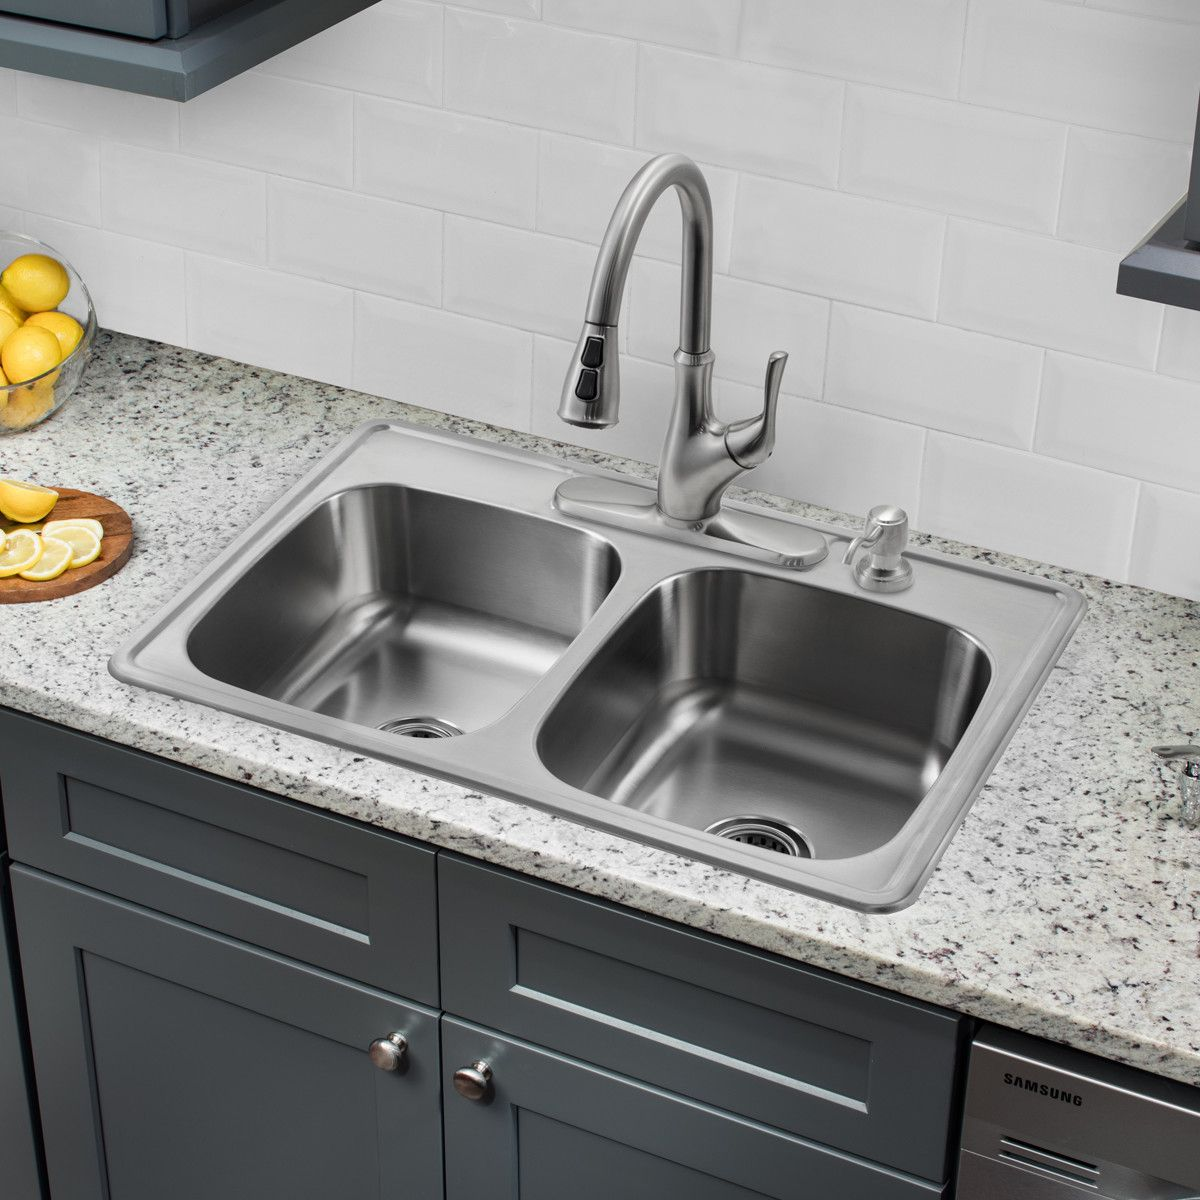 33   x 22   double bowl drop in stainless steel kitchen sink with faucet 33   x 22   double bowl drop in stainless steel kitchen sink with      rh   pinterest com